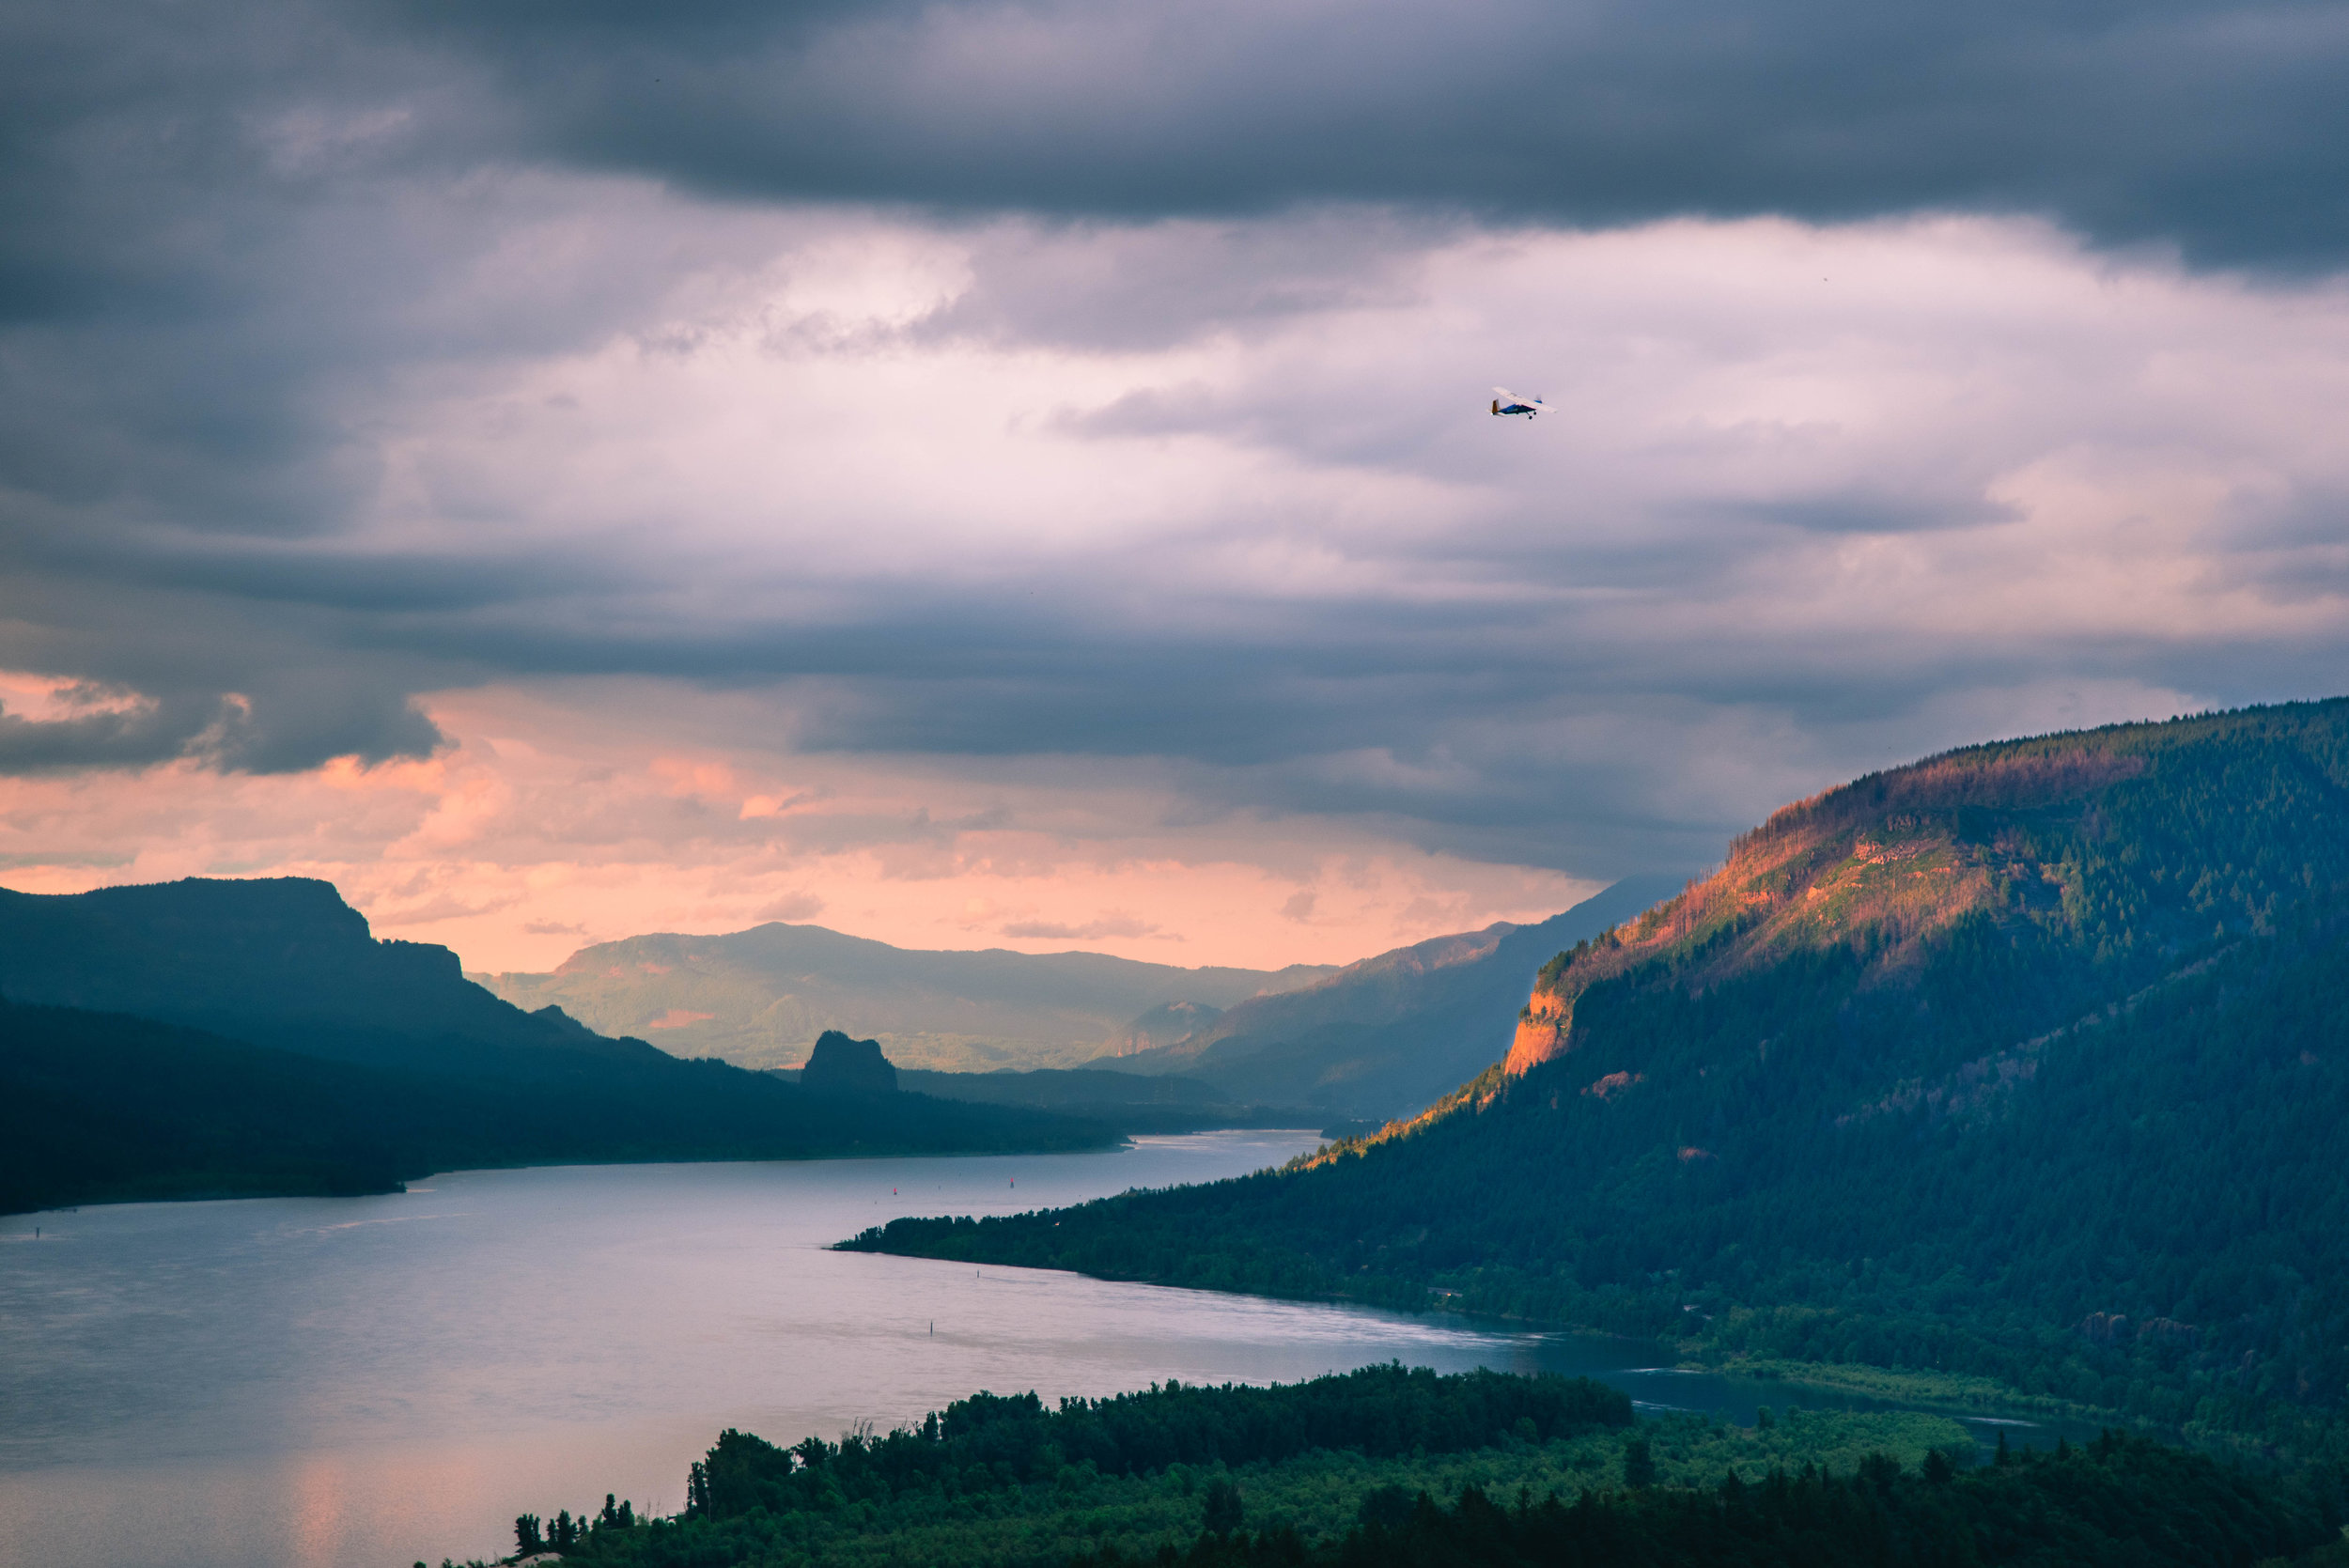 A small plane flies over the Columbia River Gorge at sunset